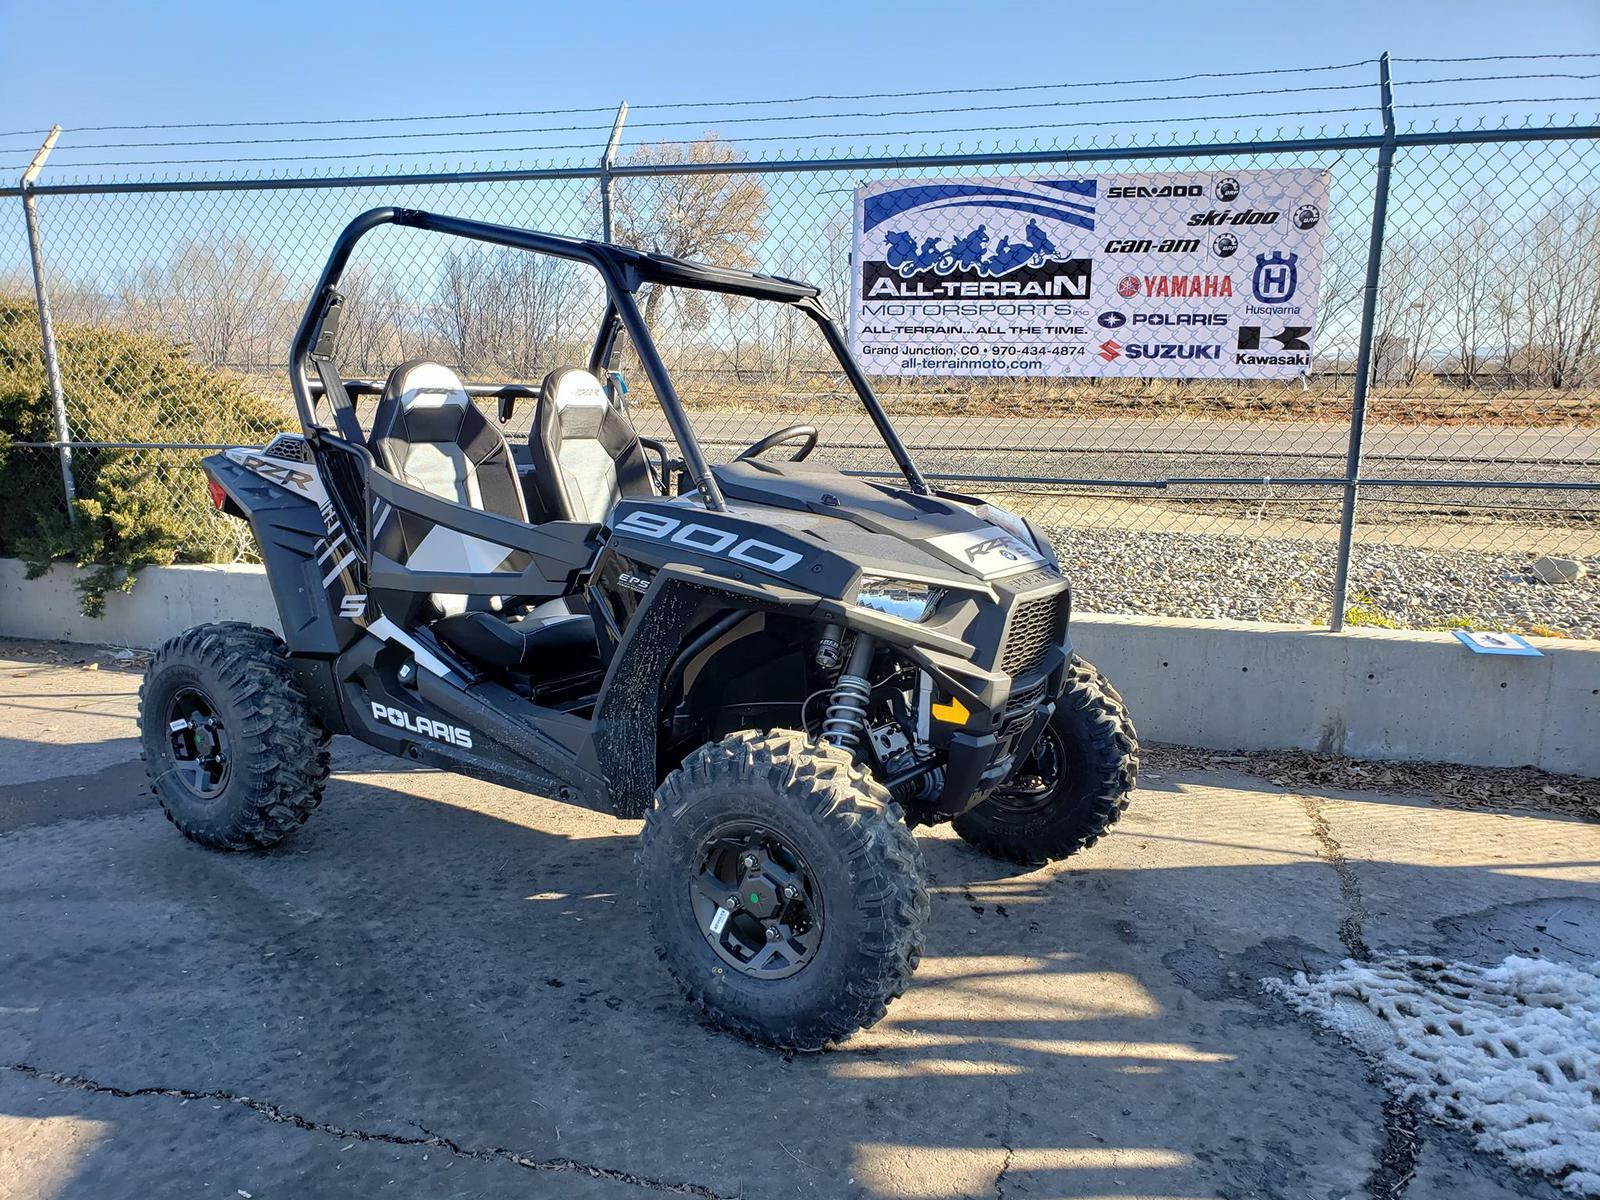 hight resolution of rzr s 900 black 2019